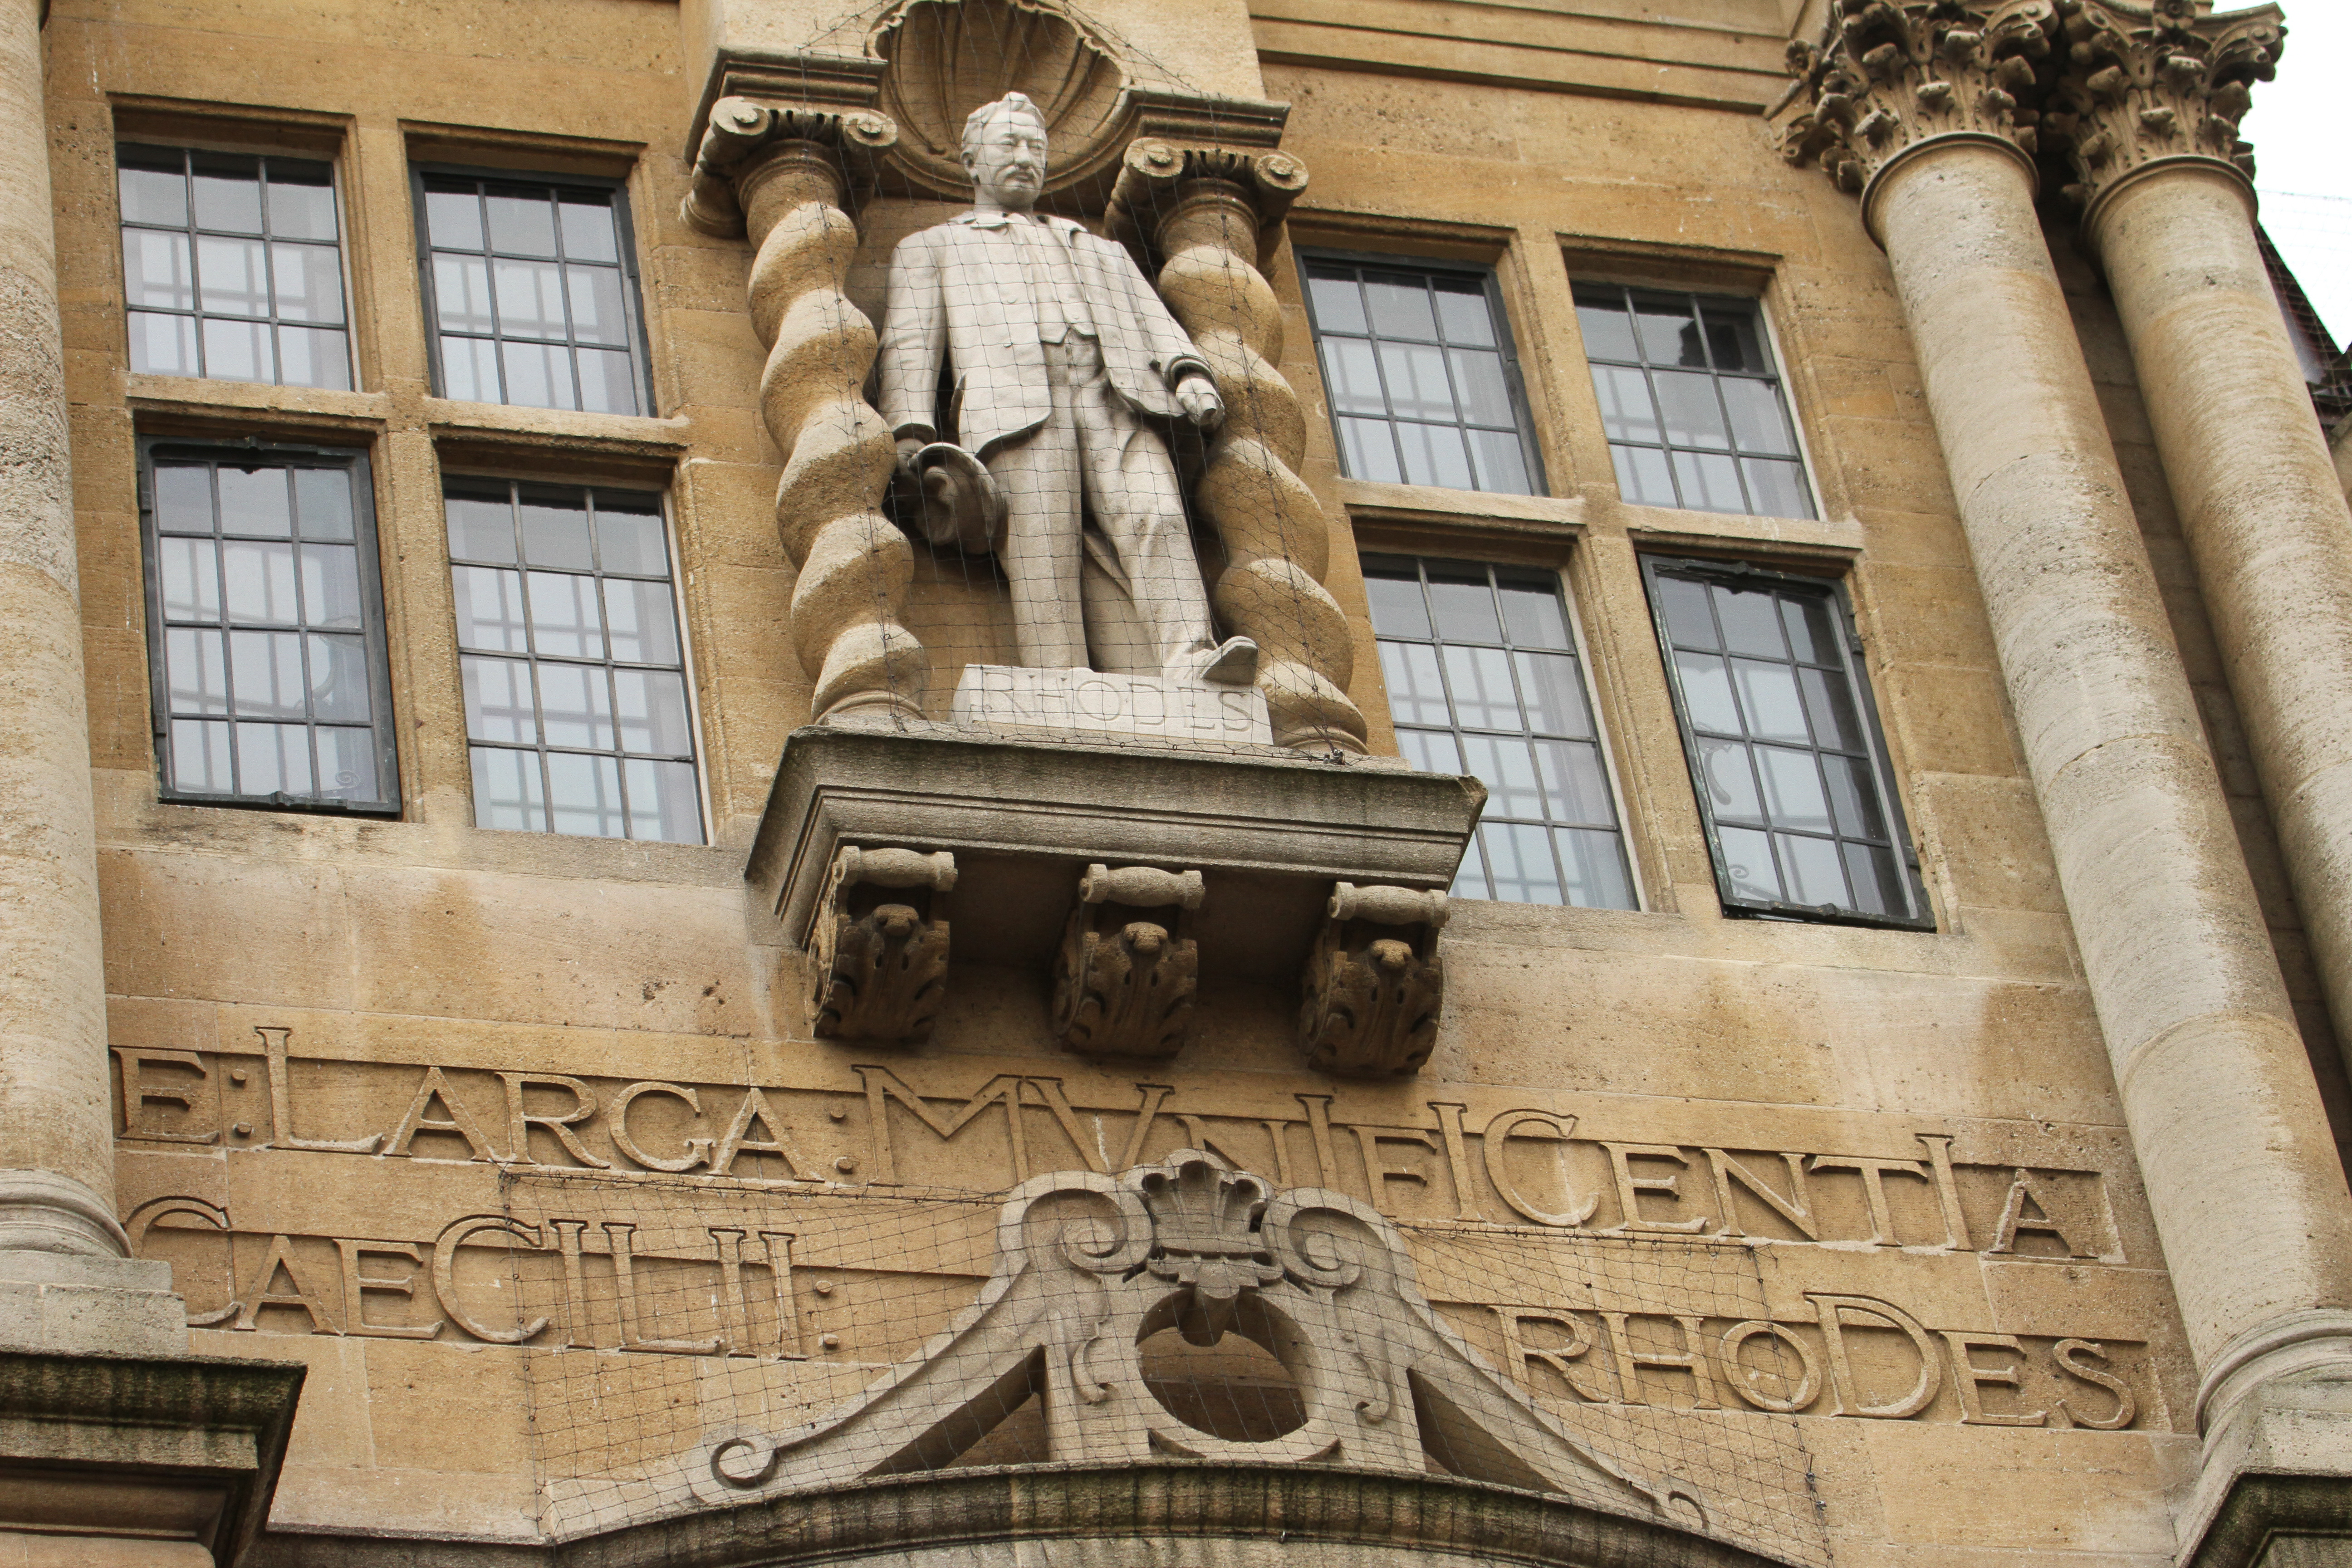 Cecil Rhodes statue stands at the front facade of the Oriel College in Oxford during the protest. Cecil was an English-born businessman, mining magnate, and politician in South Africa. The founder of the diamond company De Beers and the founder of the state of Rhodesia (now Zimbabwe) , which was named after him. The Rhodes Must Fall campaign was reignited from a 2016 campaign following recent Black Lives Matter demonstrations after the demise of George Floyd under police custody in Mineapolis. Despite the Covid19 lockdown, protesters globally have united to demand change. (Photo by David Mbiyu / SOPA Images/Sipa USA)